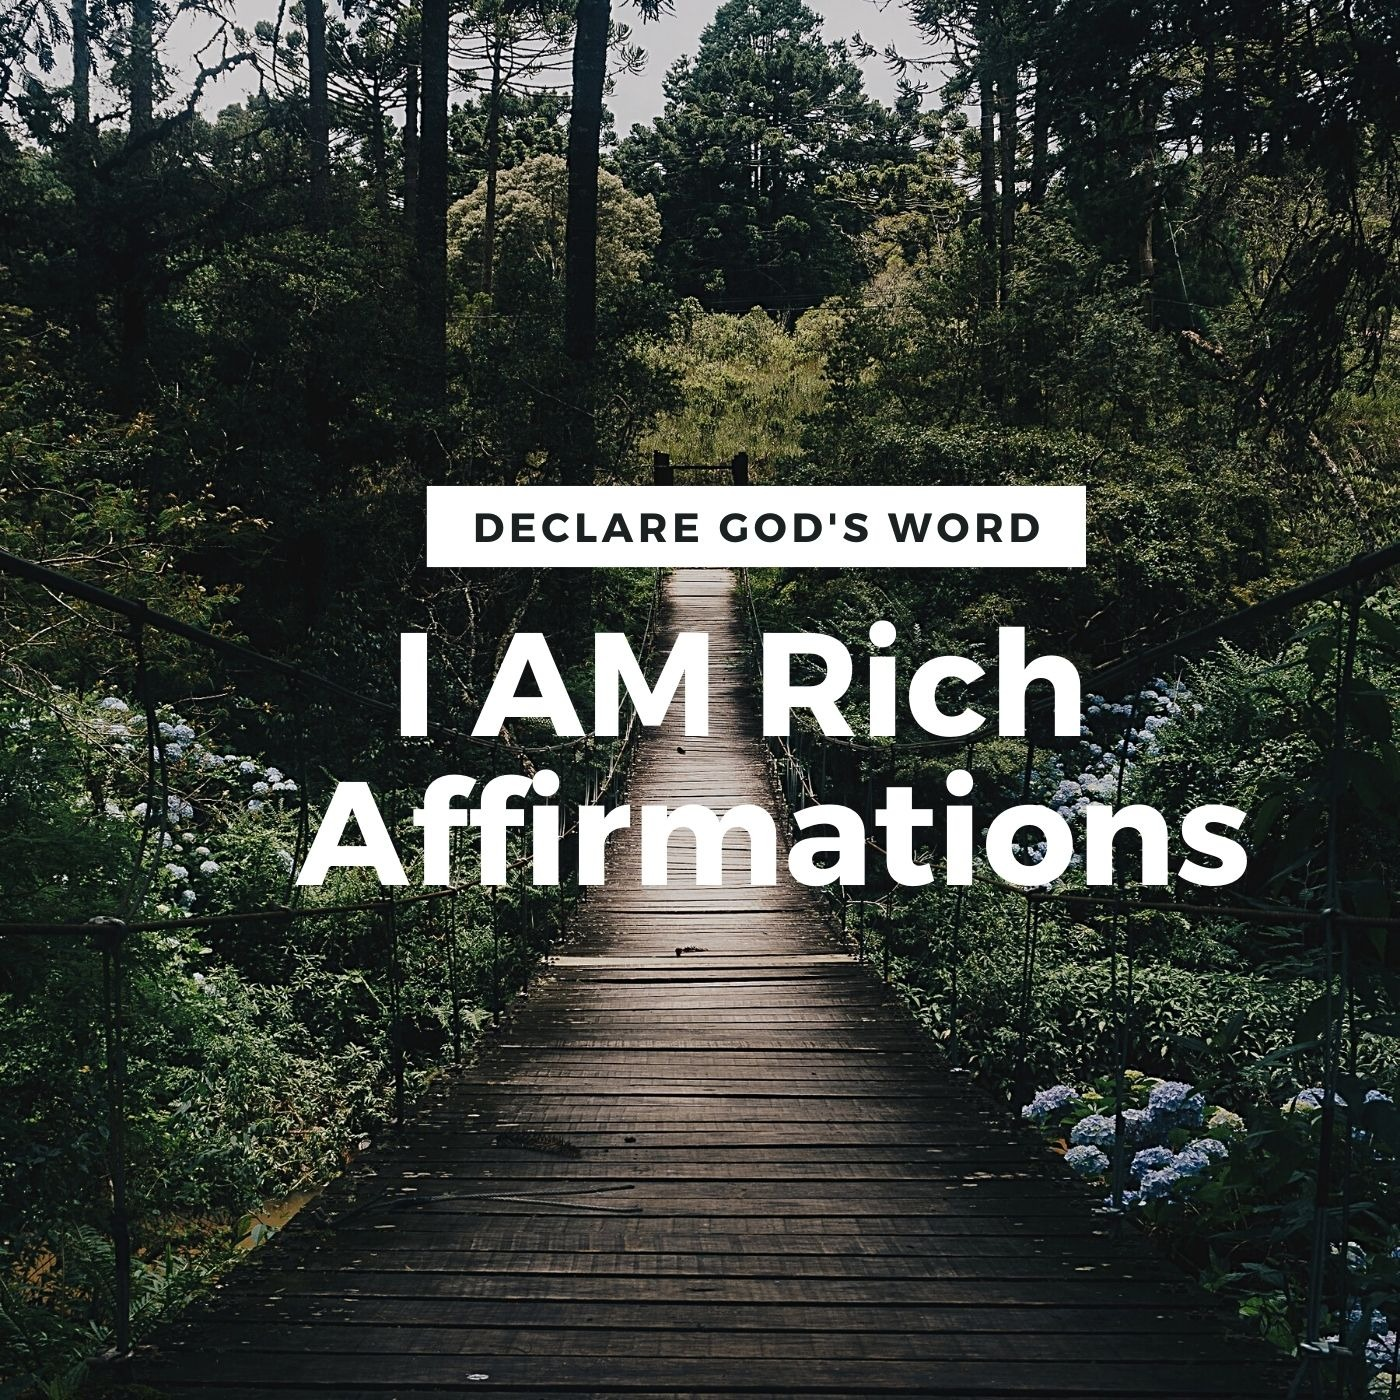 I AM Rich Affirmations - Renew Your Mind (While You Sleep)